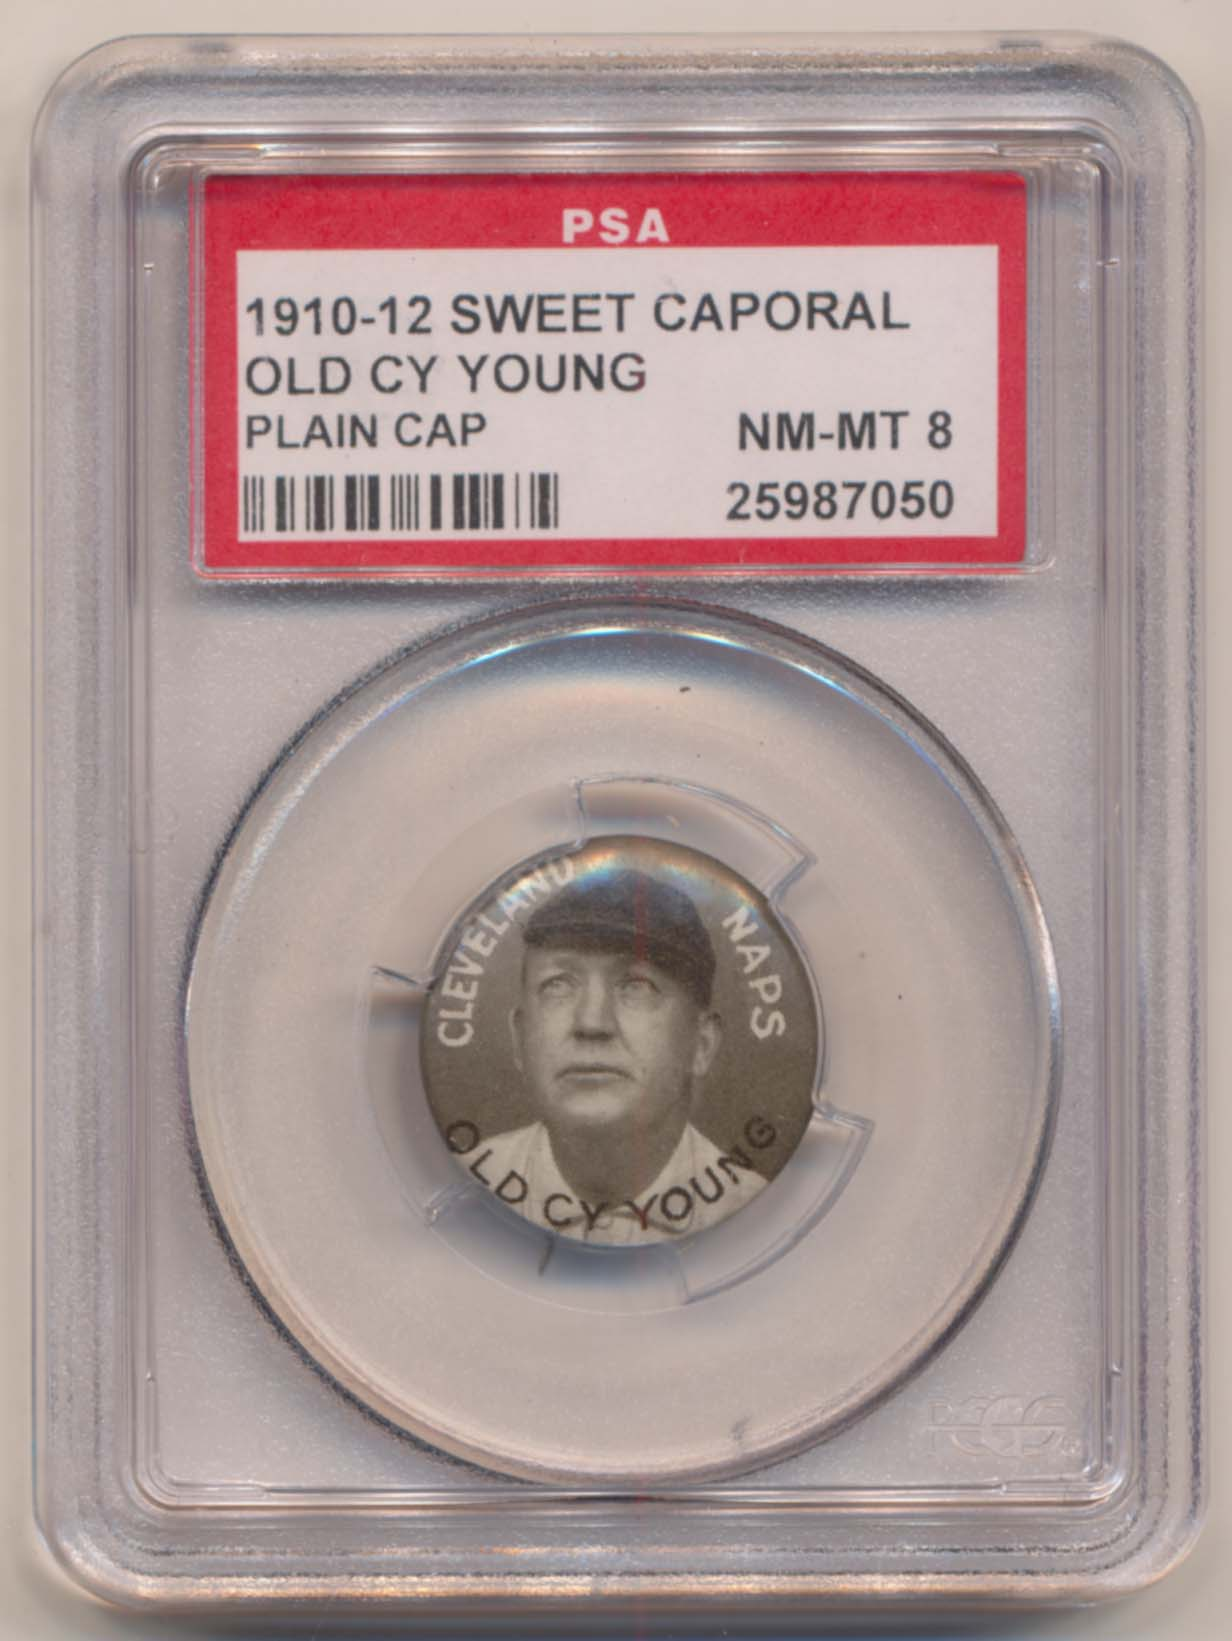 Lot #75 1910 Sweet Caporal Pins  Cy Young (large letters) Cond: PSA 8